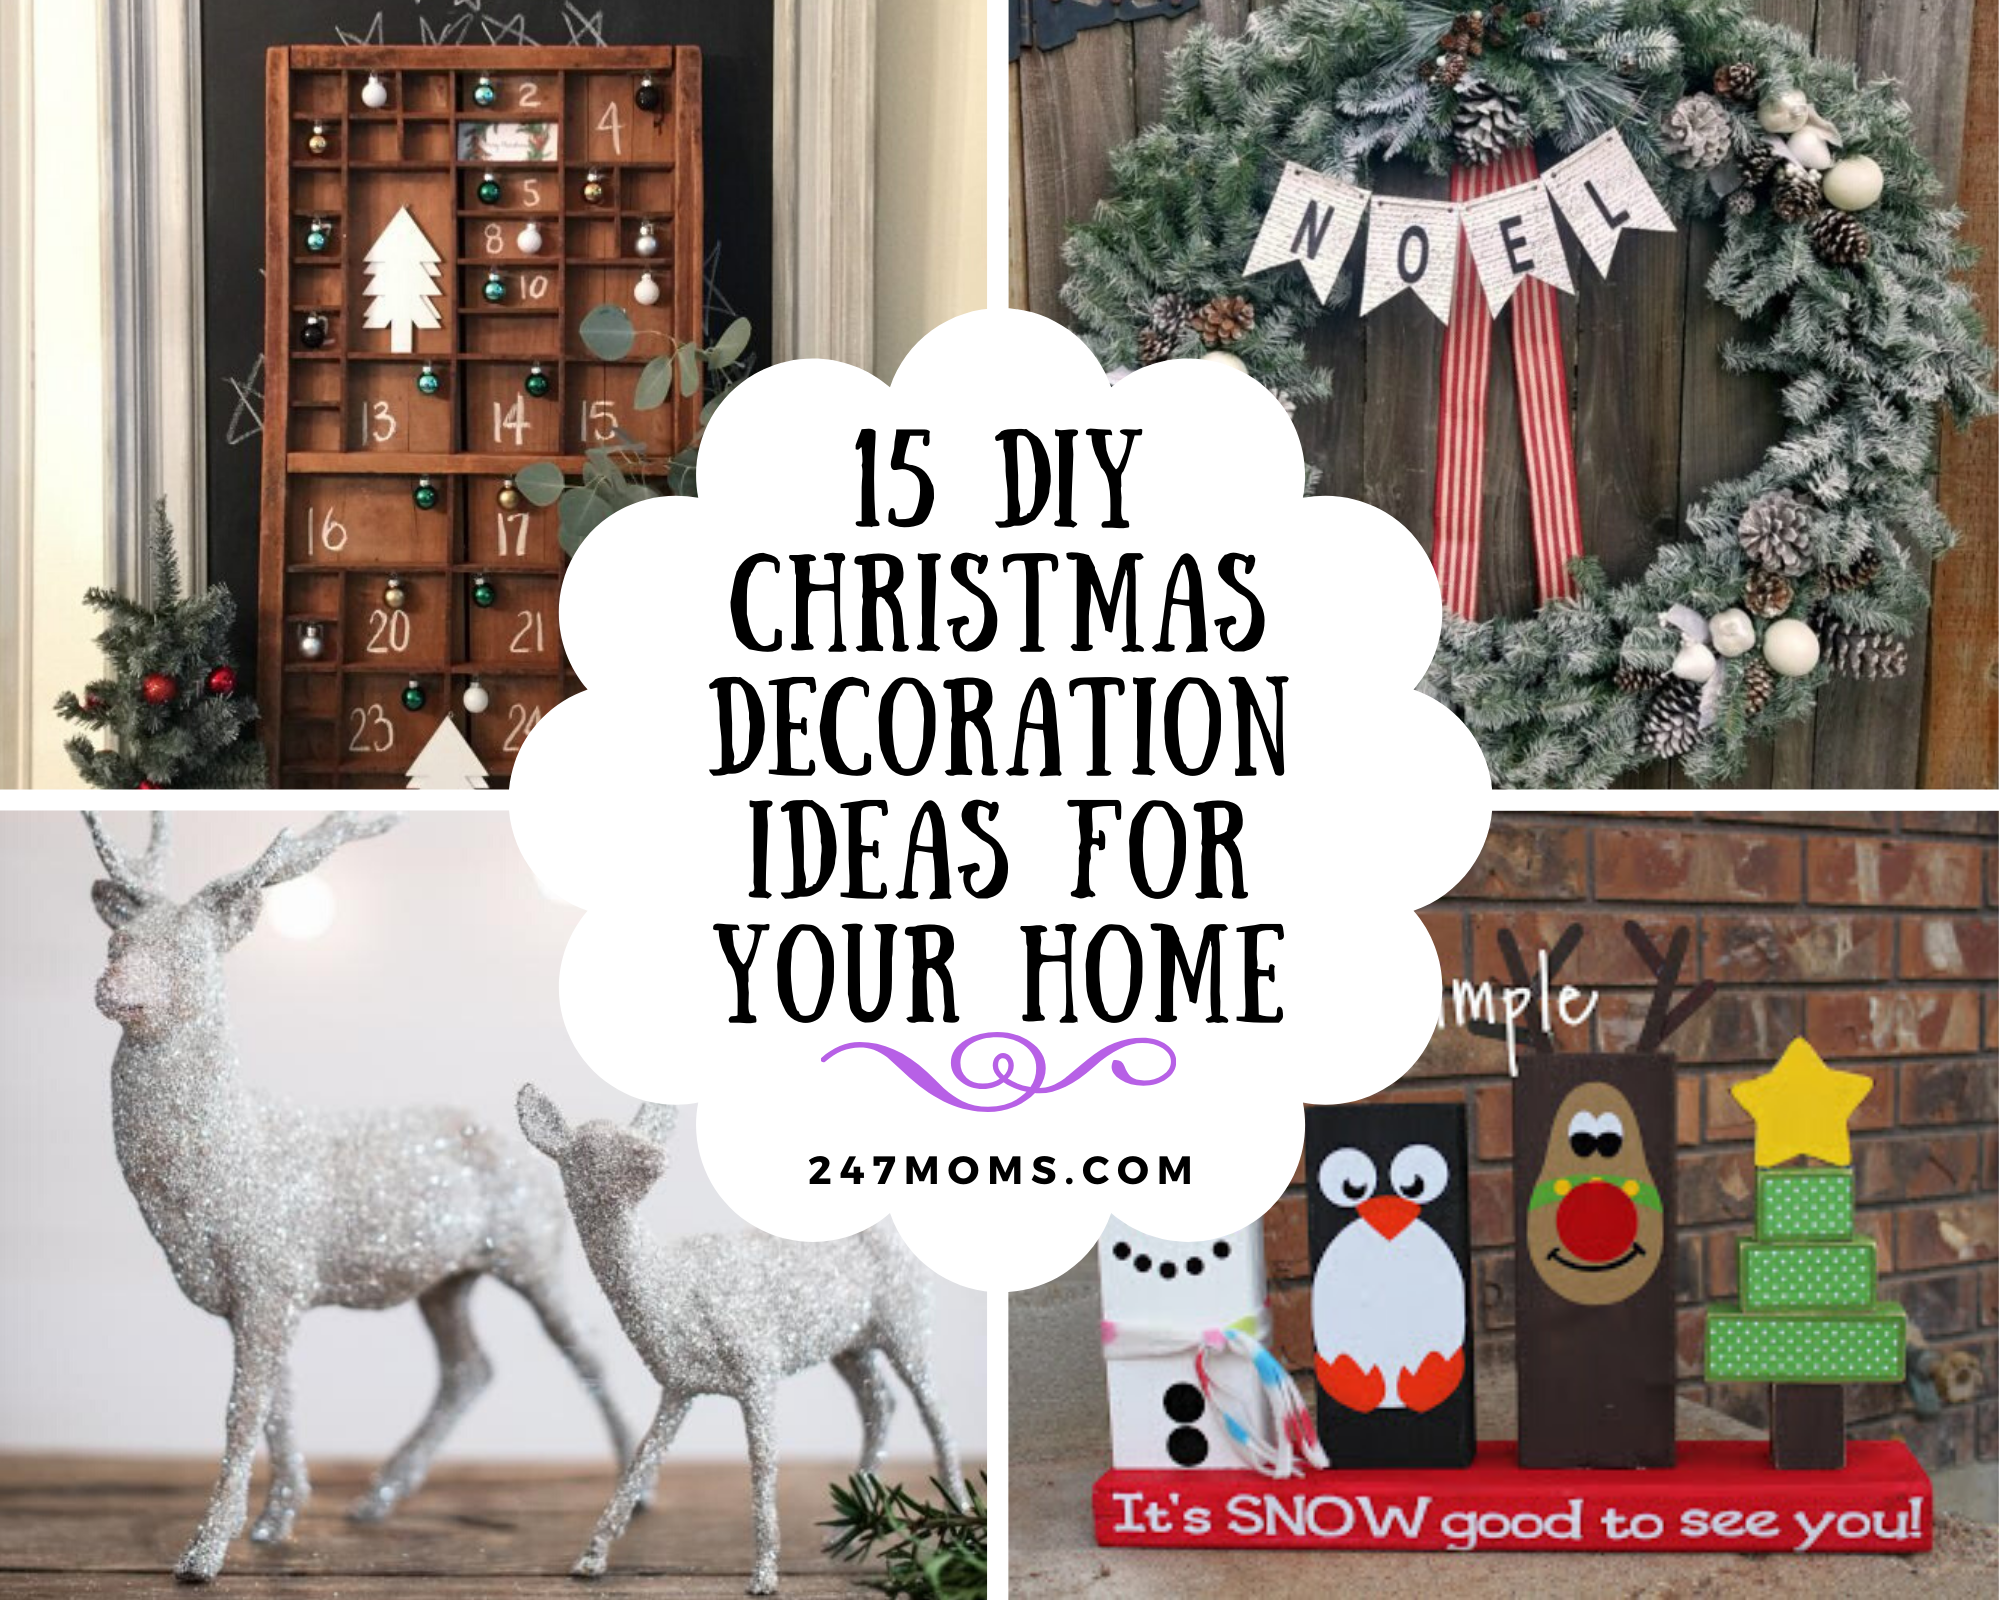 15 Diy Christmas Decoration Ideas For Your Home 24 7 Moms